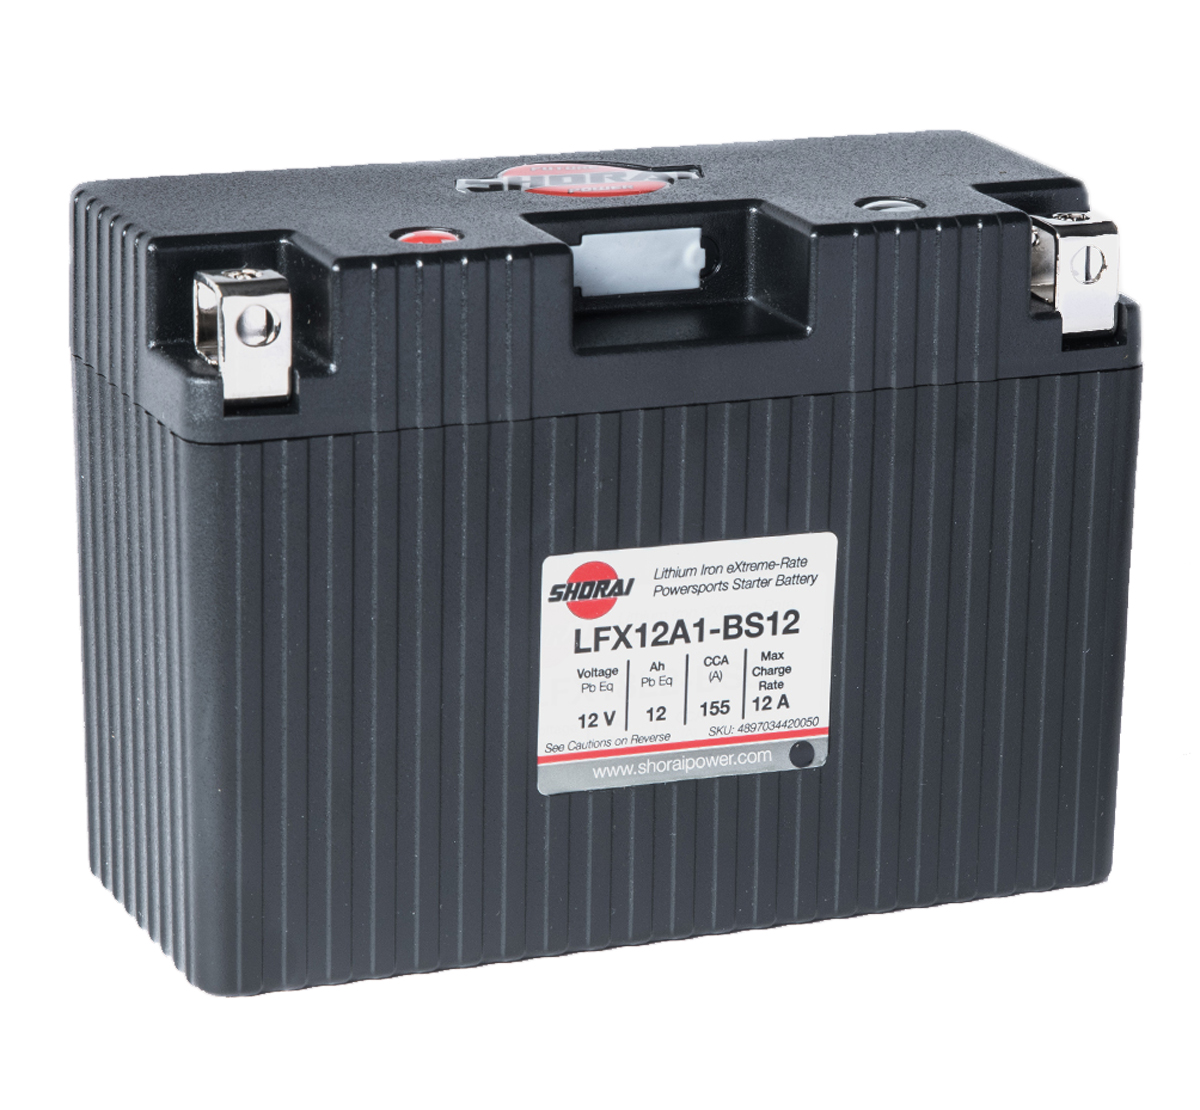 Shorai LFX12A1-BS12 12V Lithium Battery